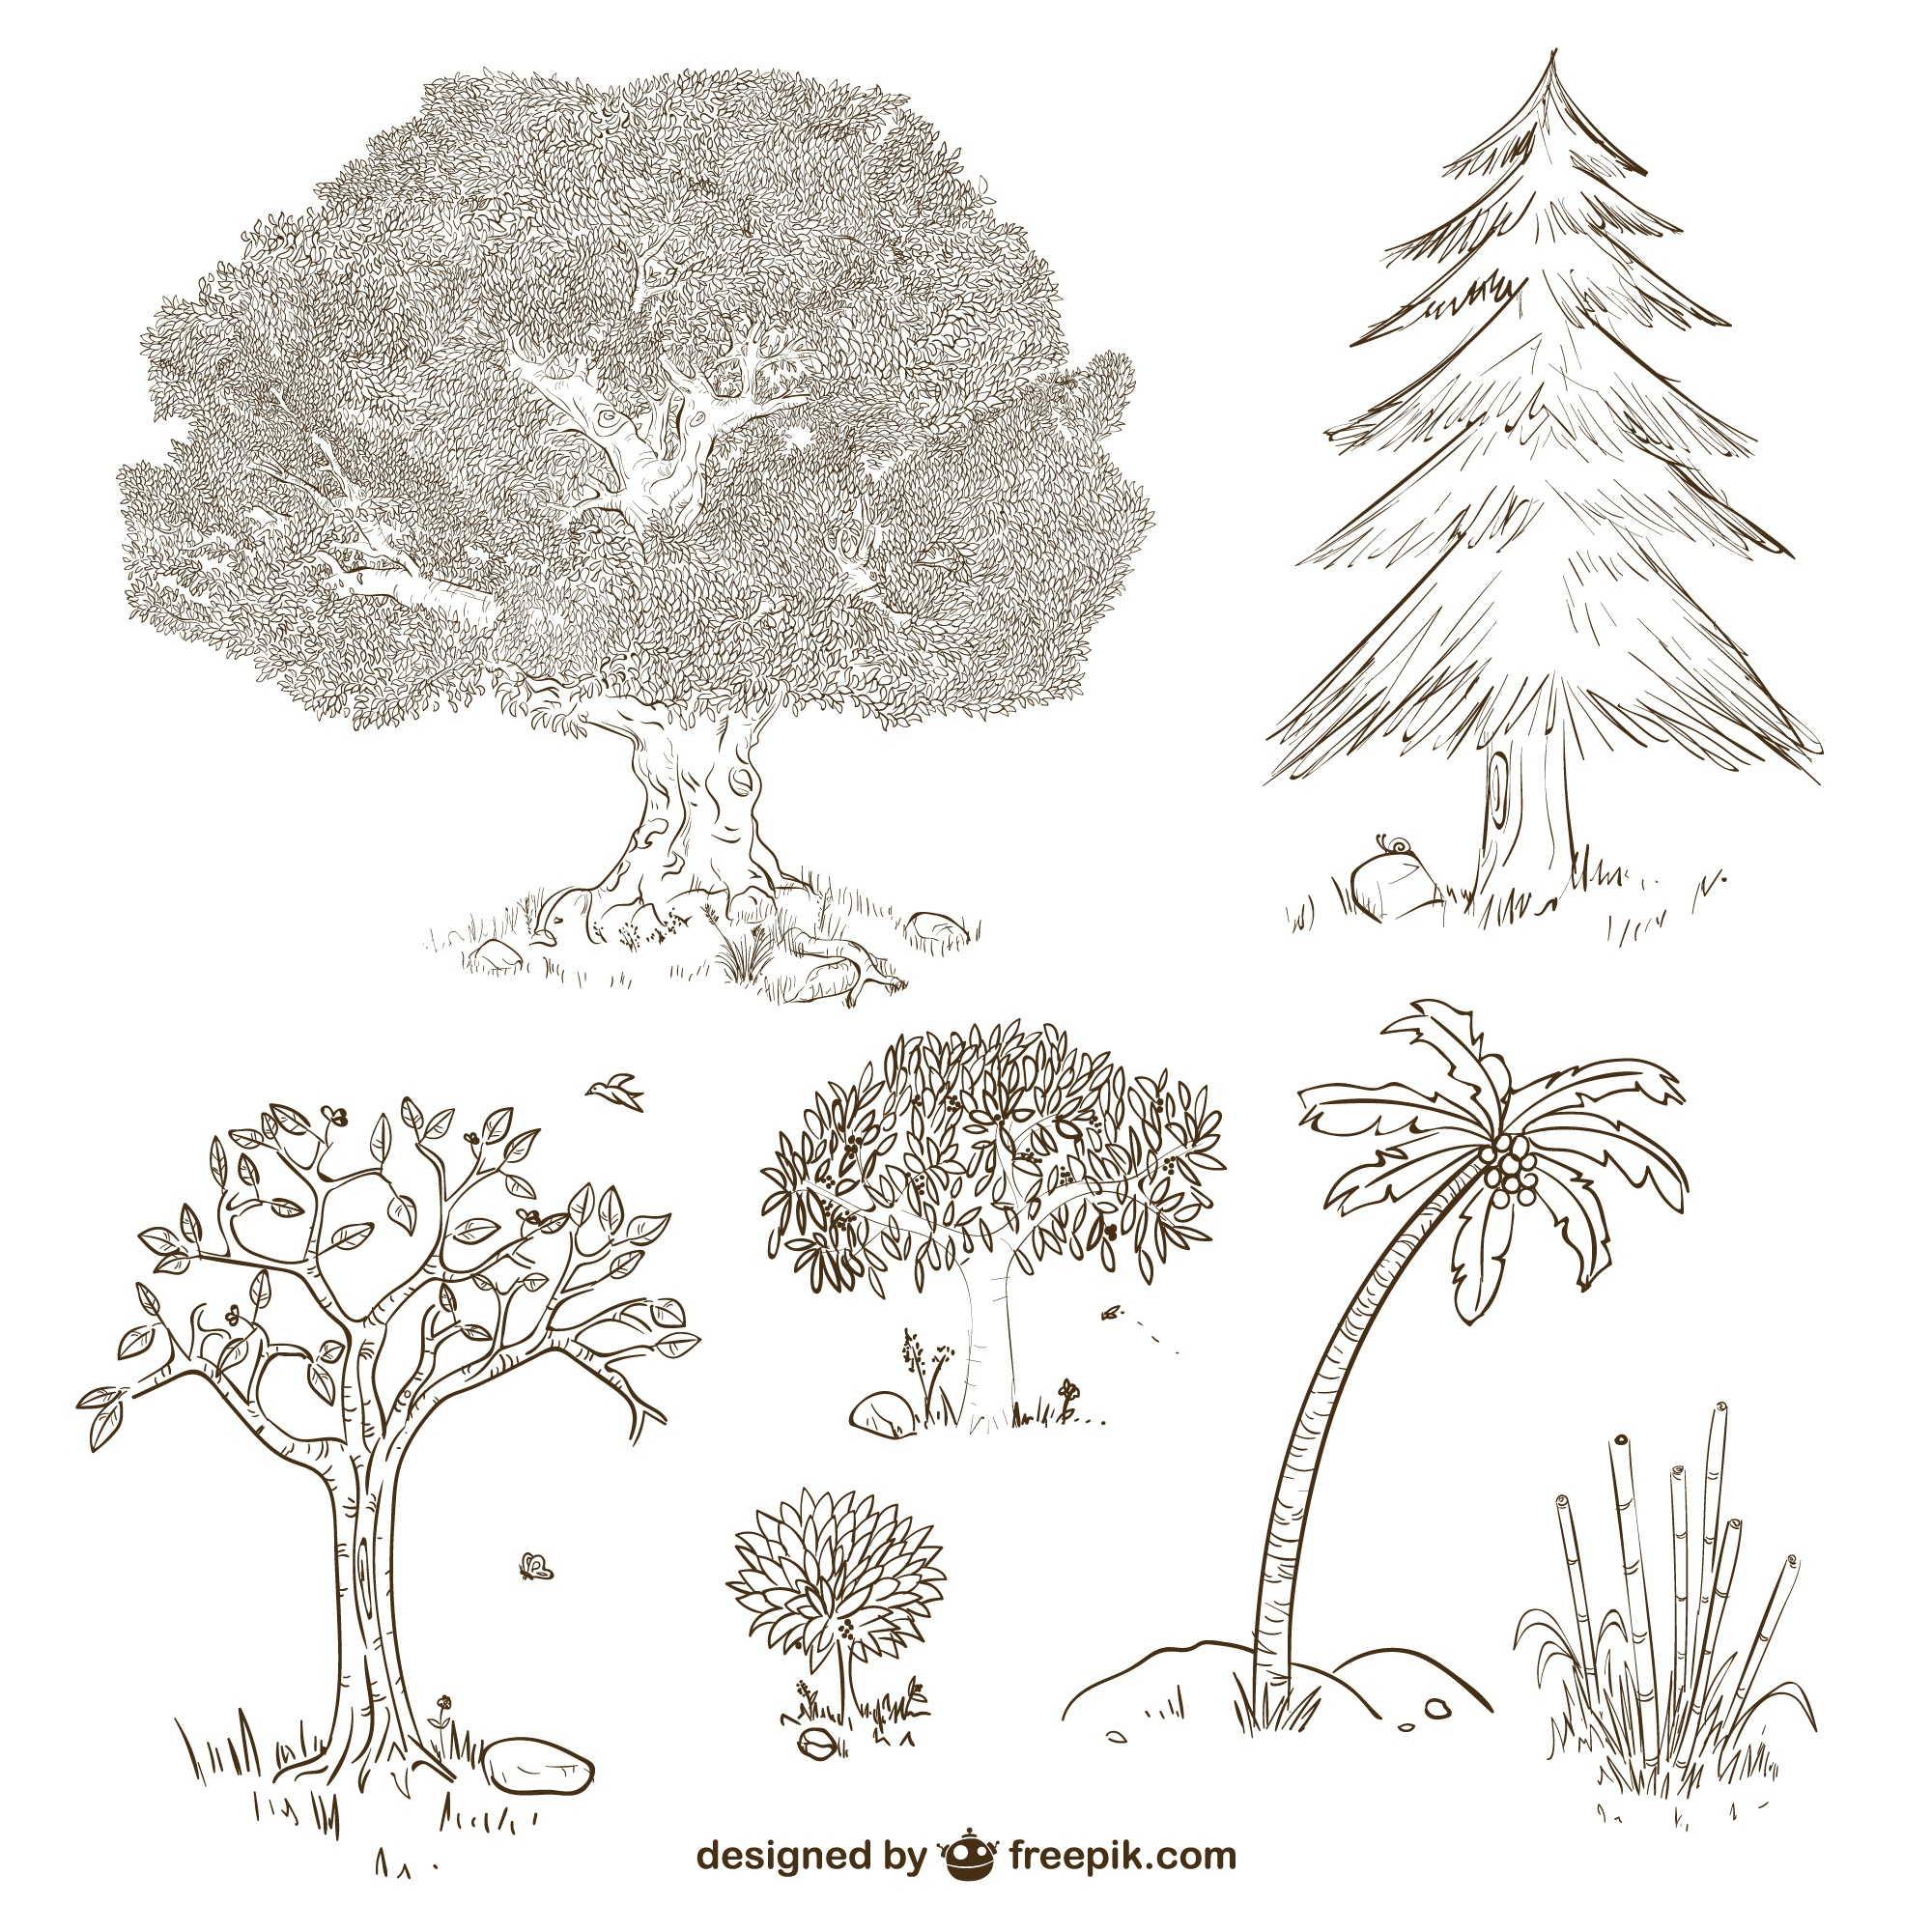 Trees and plants drawings